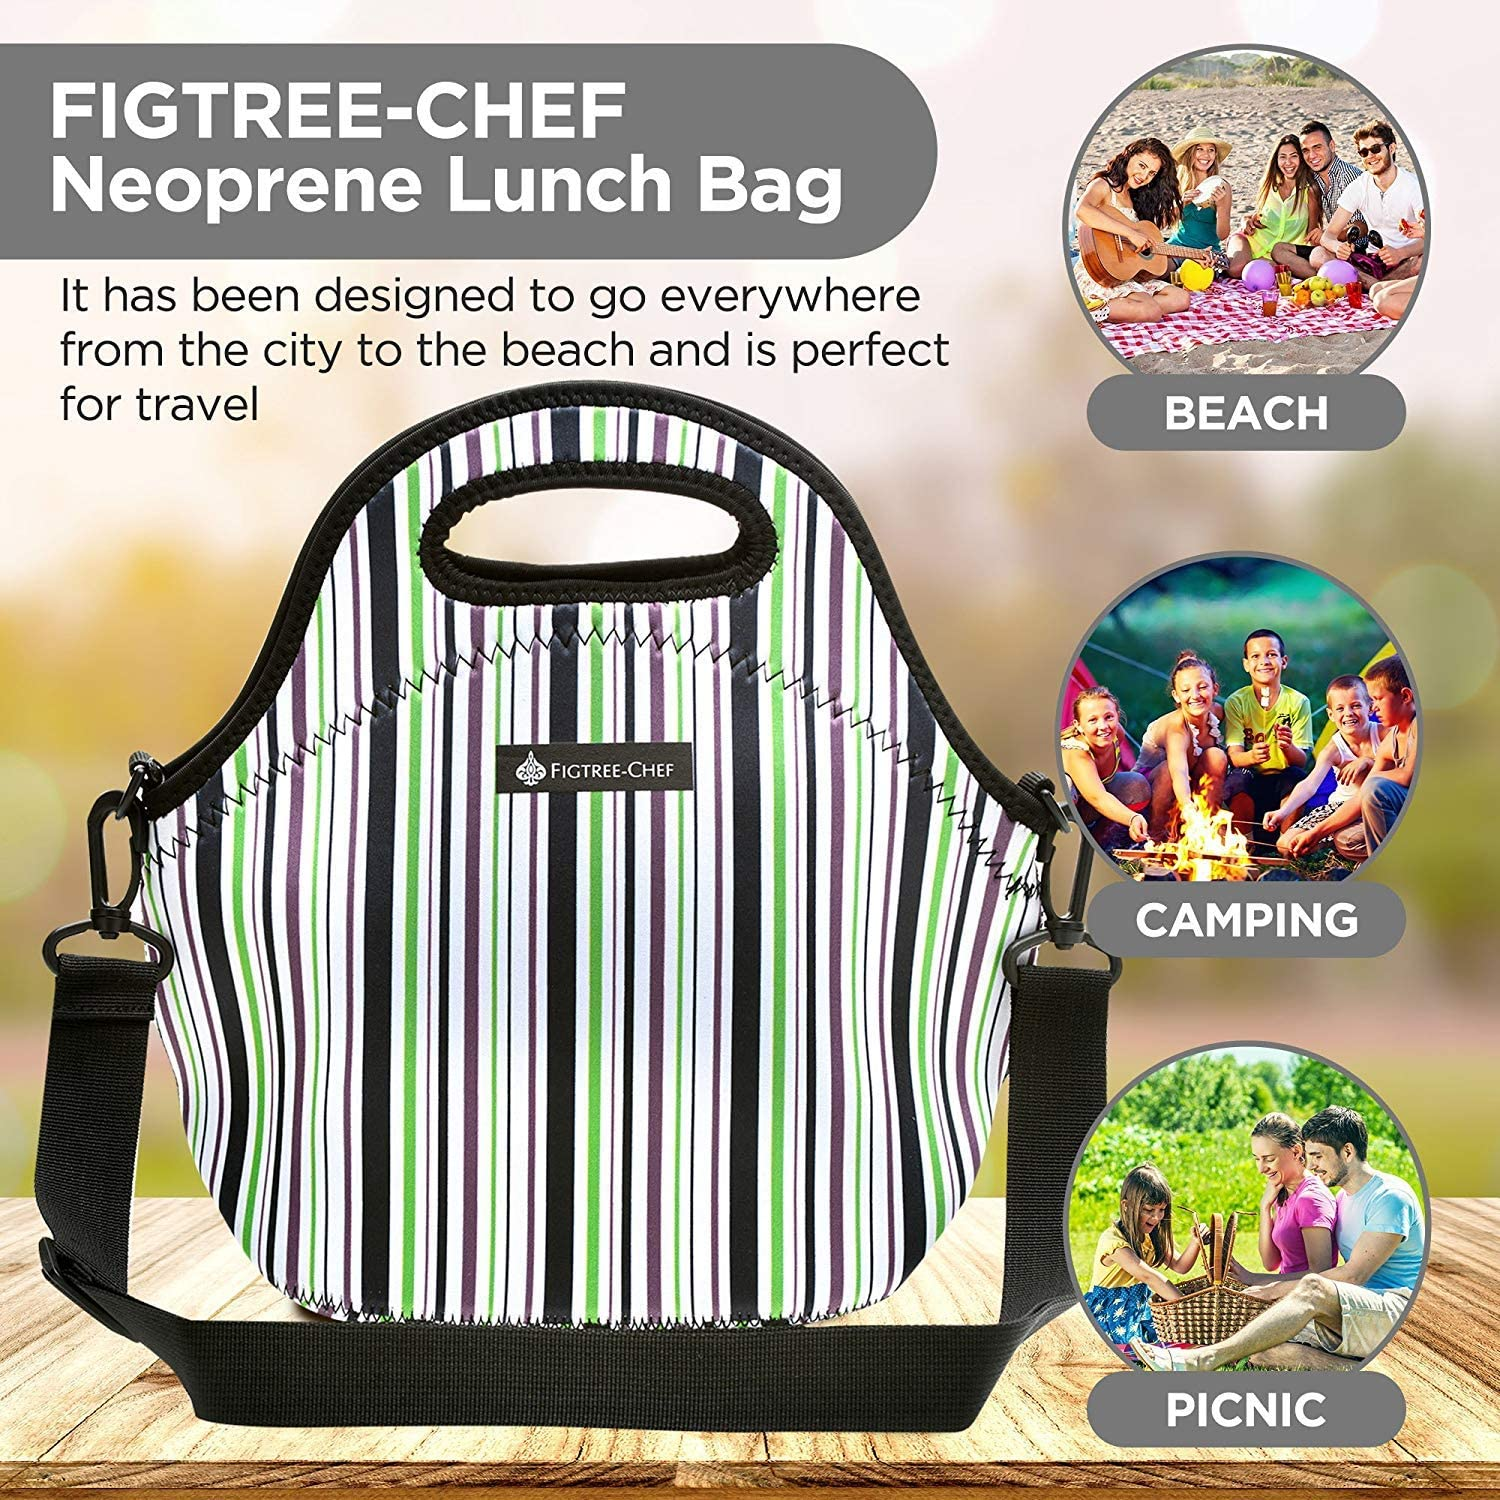 Machine Wash Unique Design FIGTREE-CHEF Small Neoprene Lunch Bags for Women with Shoulder Strap Picnic Perfect Folds Flat